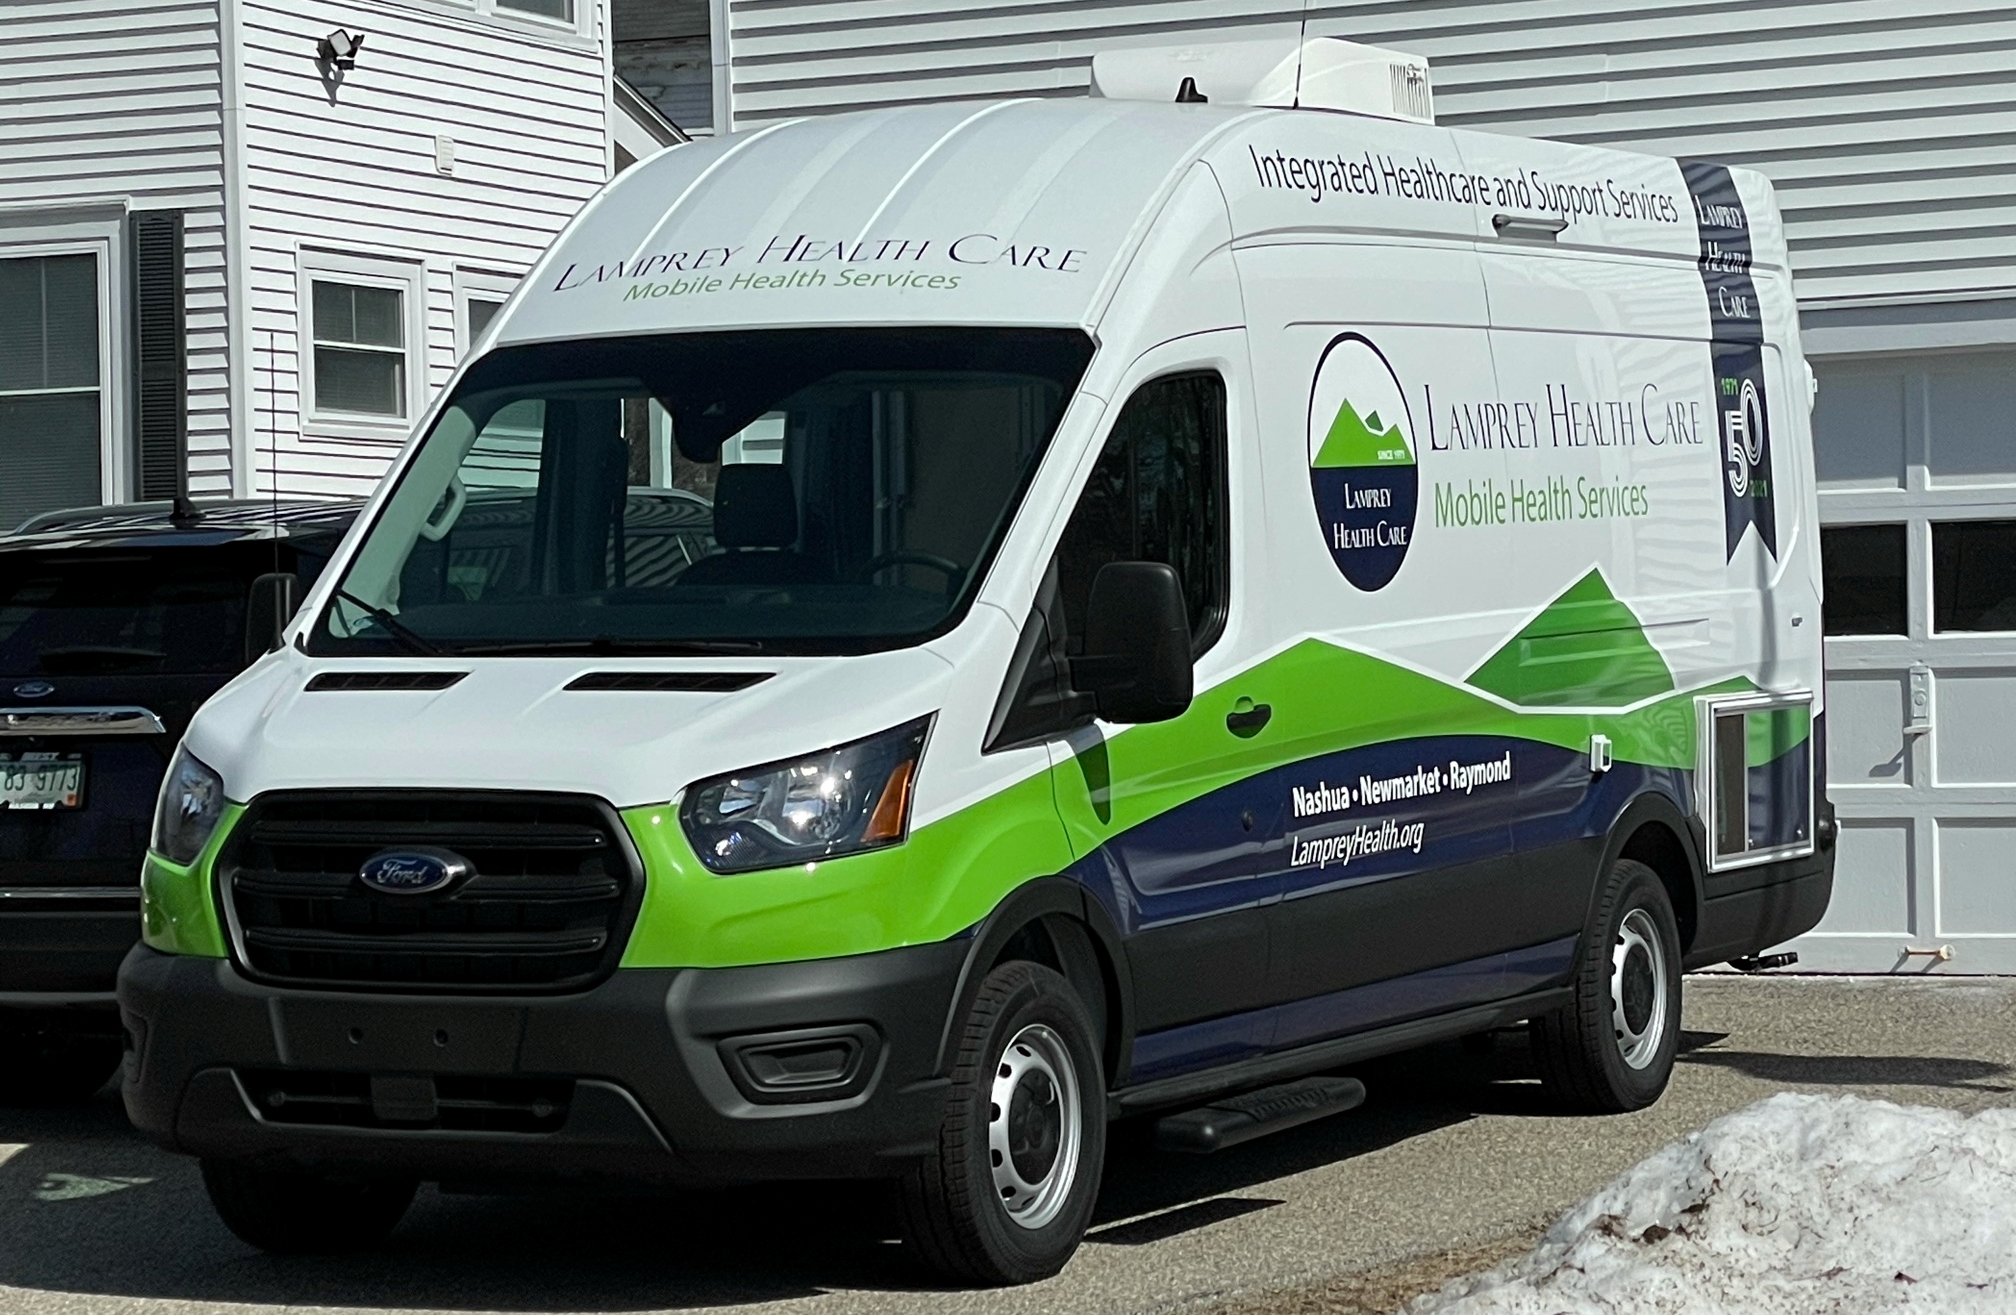 Lamprey Health Care Launches Mobile Health Van